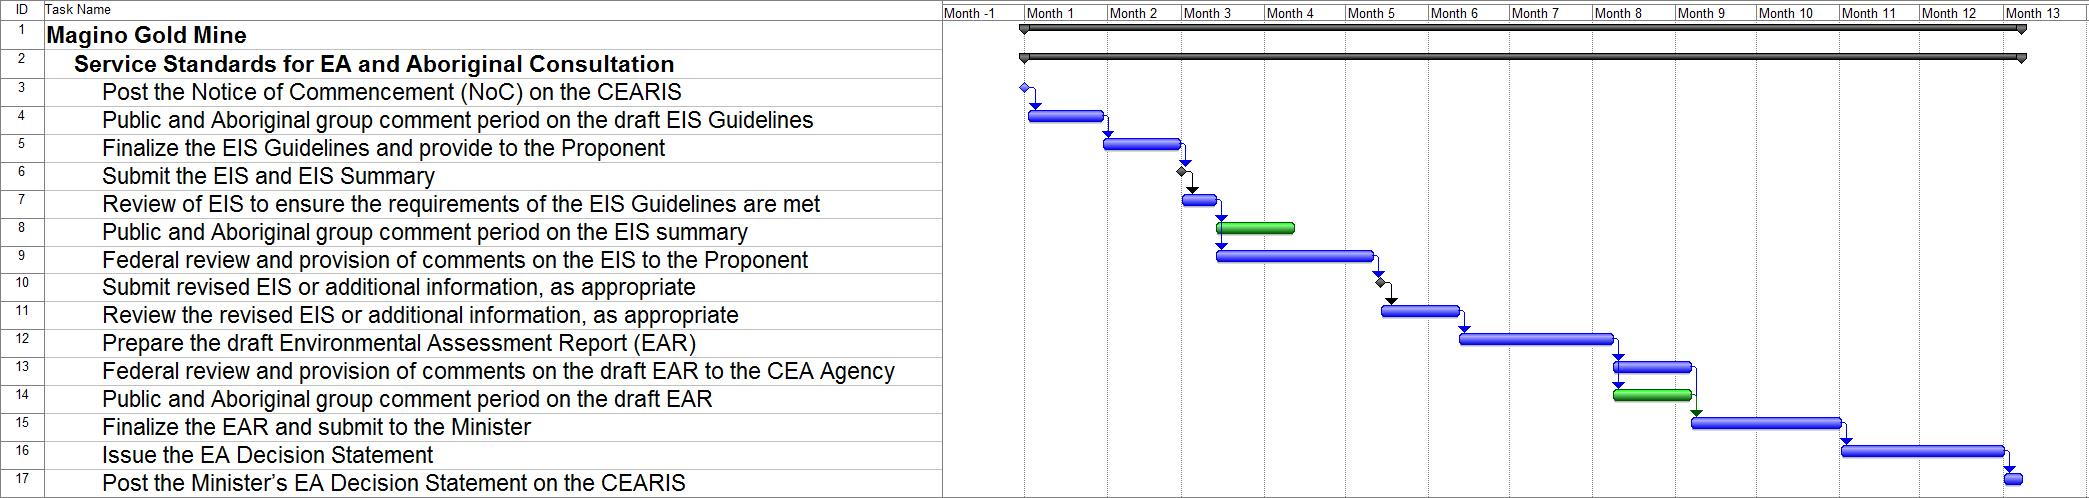 Gantt Chart: Target Timelines for the EA